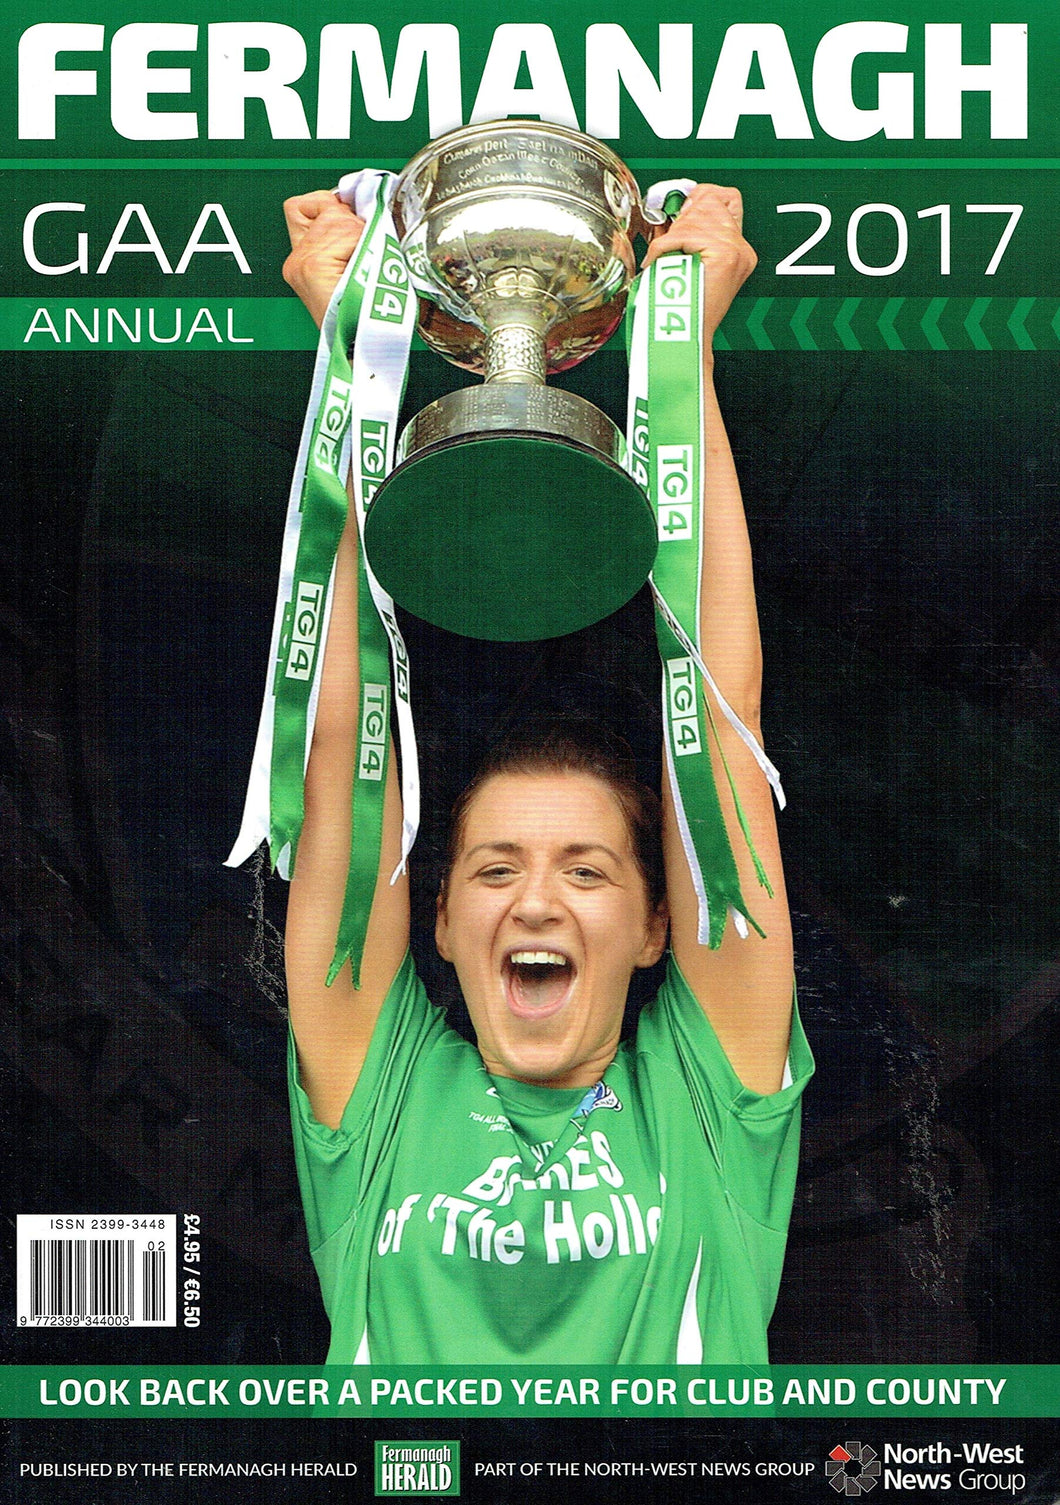 Fermanagh GAA Annual 2017: Look Back Over a Packed Year for Club and Country